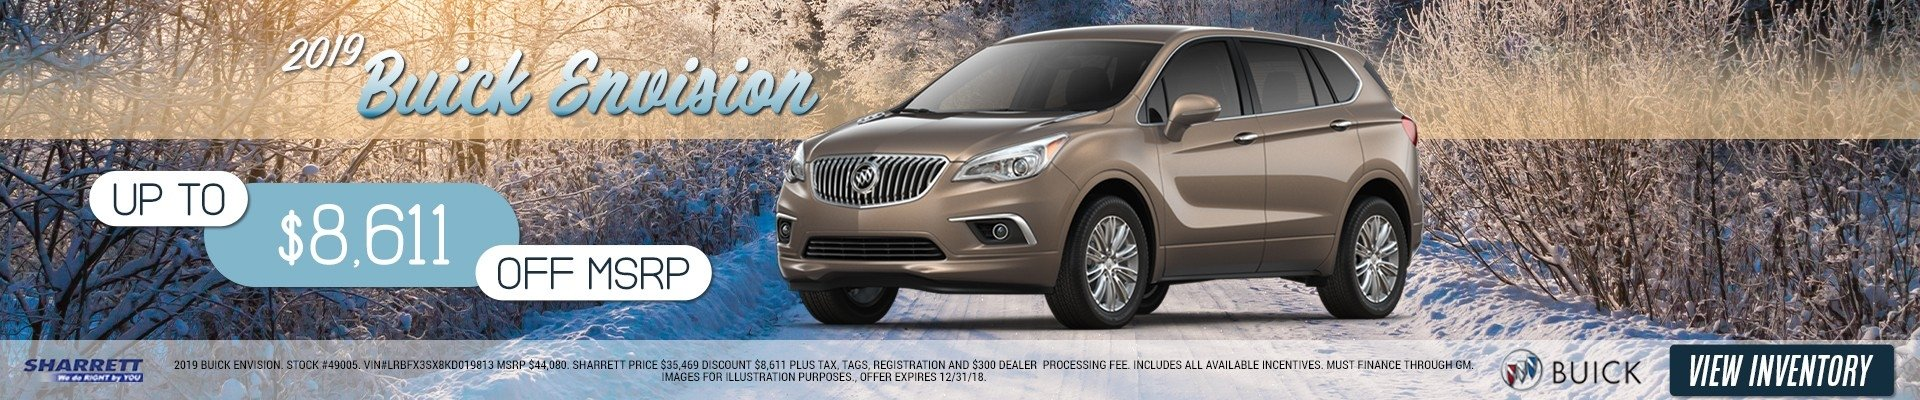 Up to $8,611 off MSRP on a 2019 Buick Envision